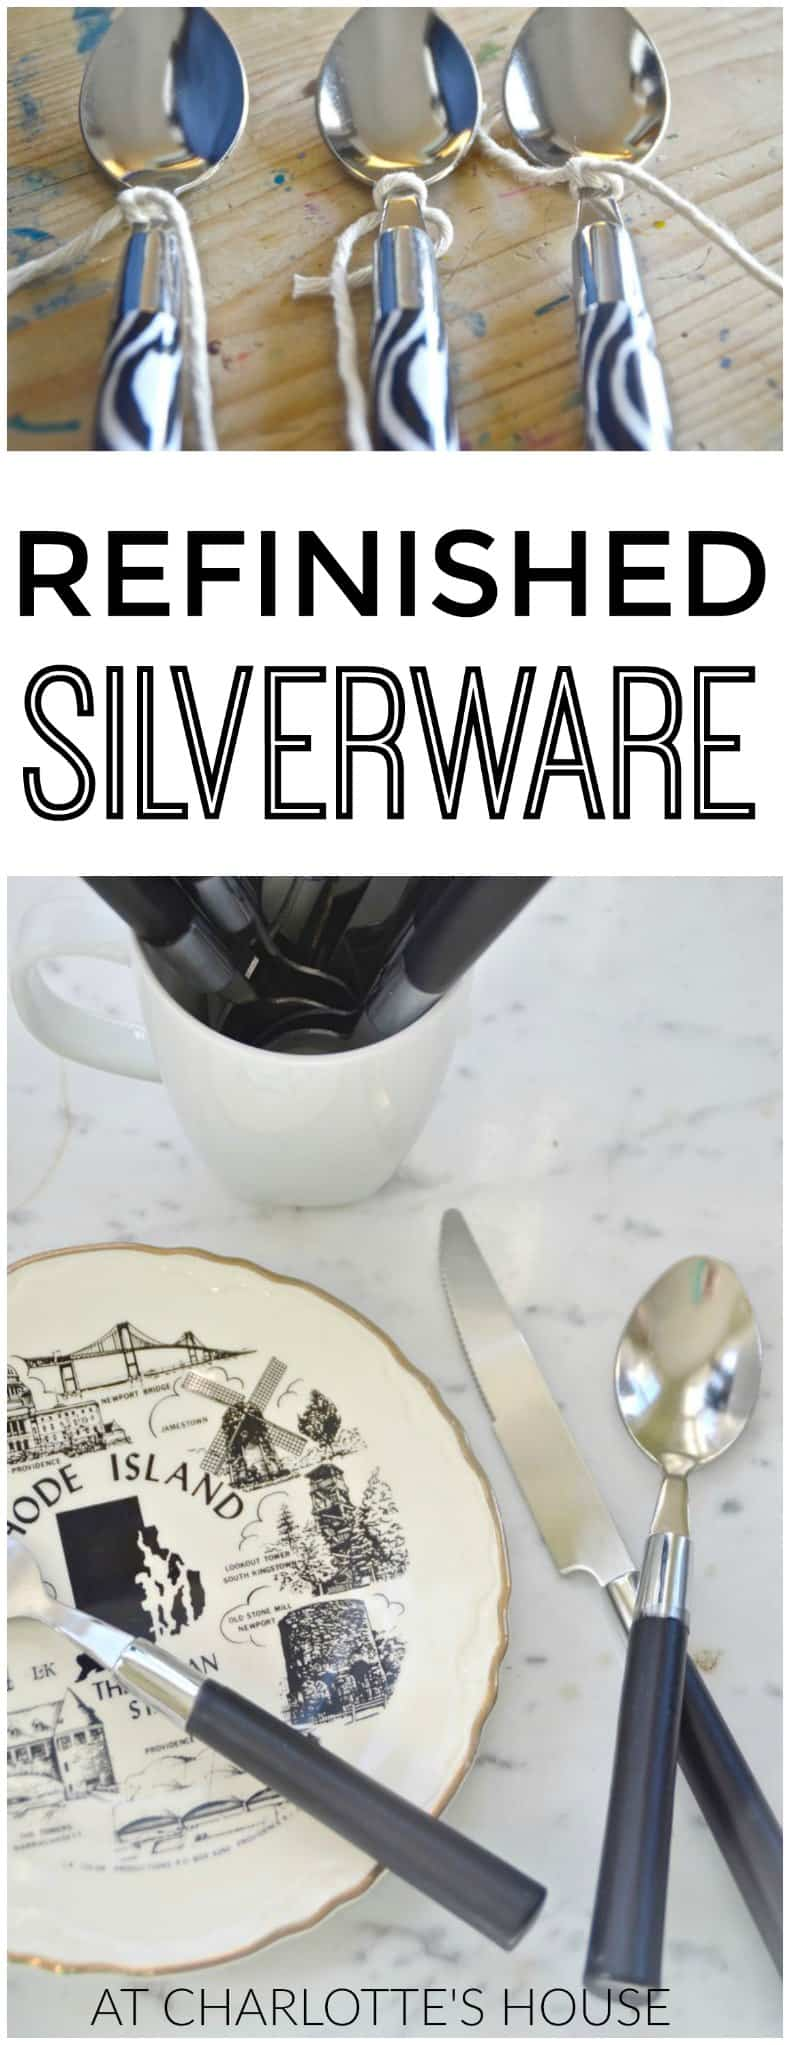 Refinish your silverware with one easy product!